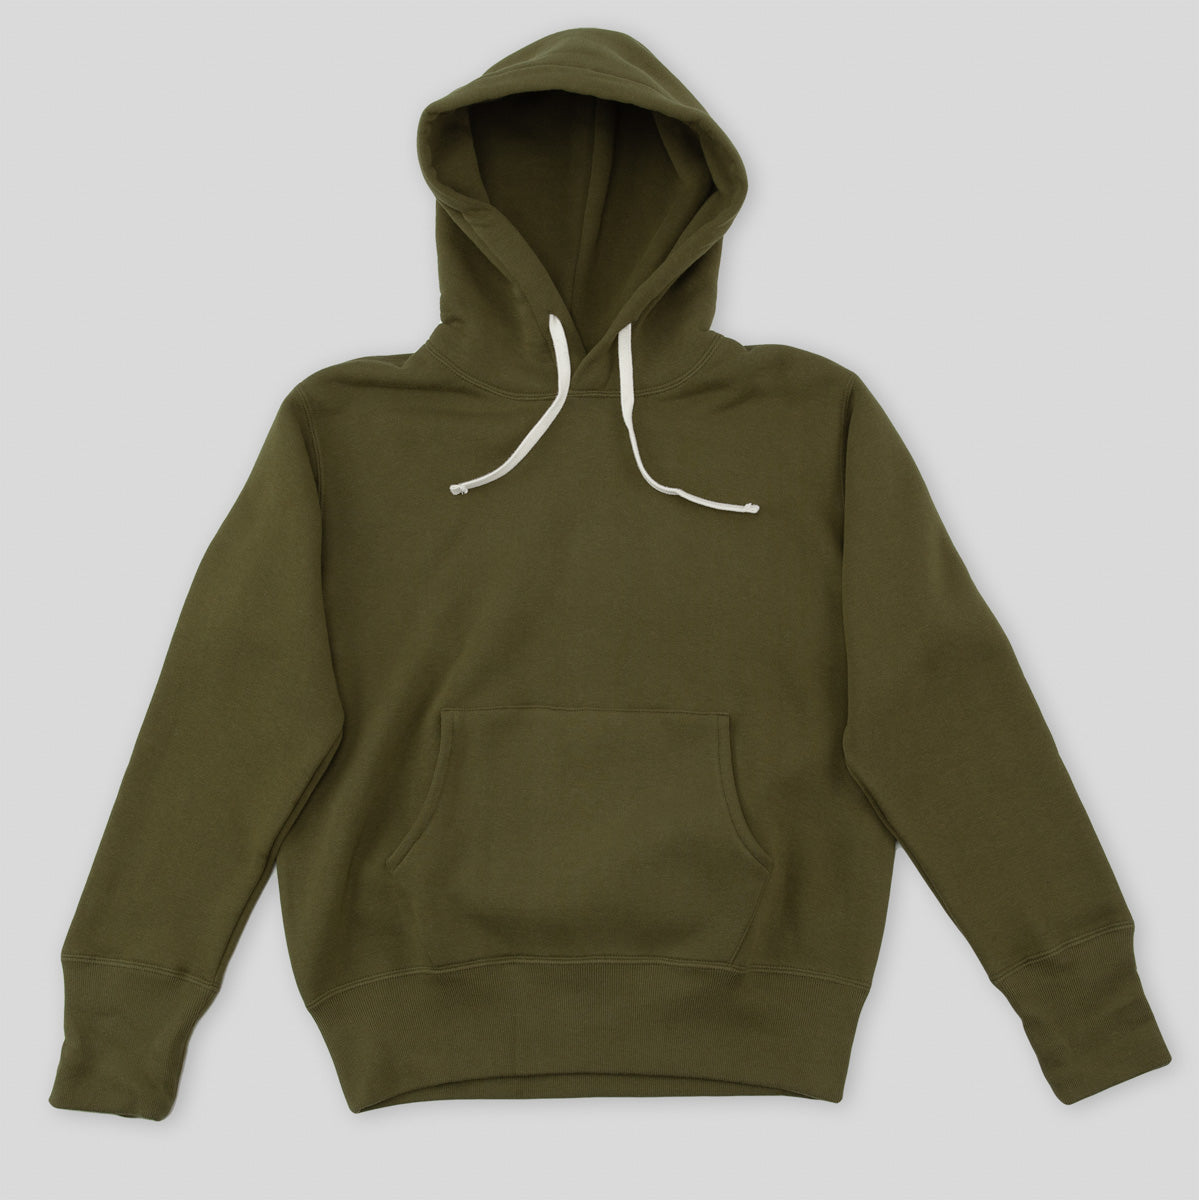 cc3321e6ced05 The Real McCoy's Loopwheel Pullover Hoodie - Olive - Standard & Strange